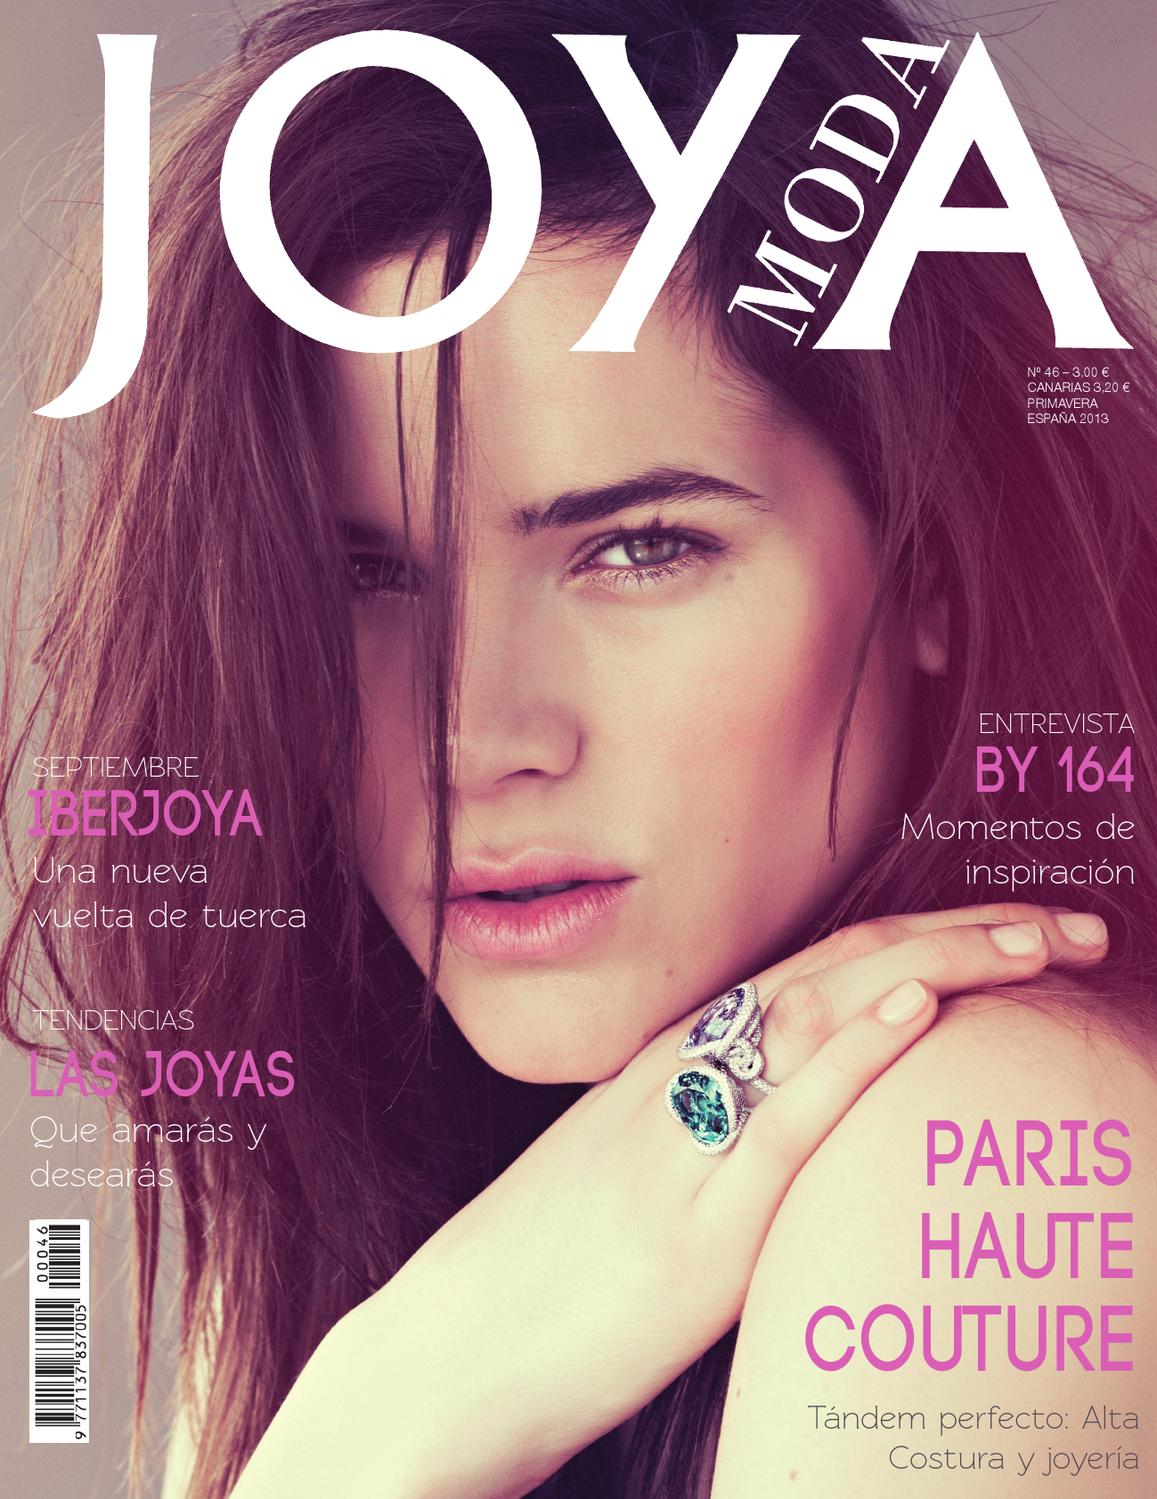 JOYA MODA 46 by EDIMODA - issuu